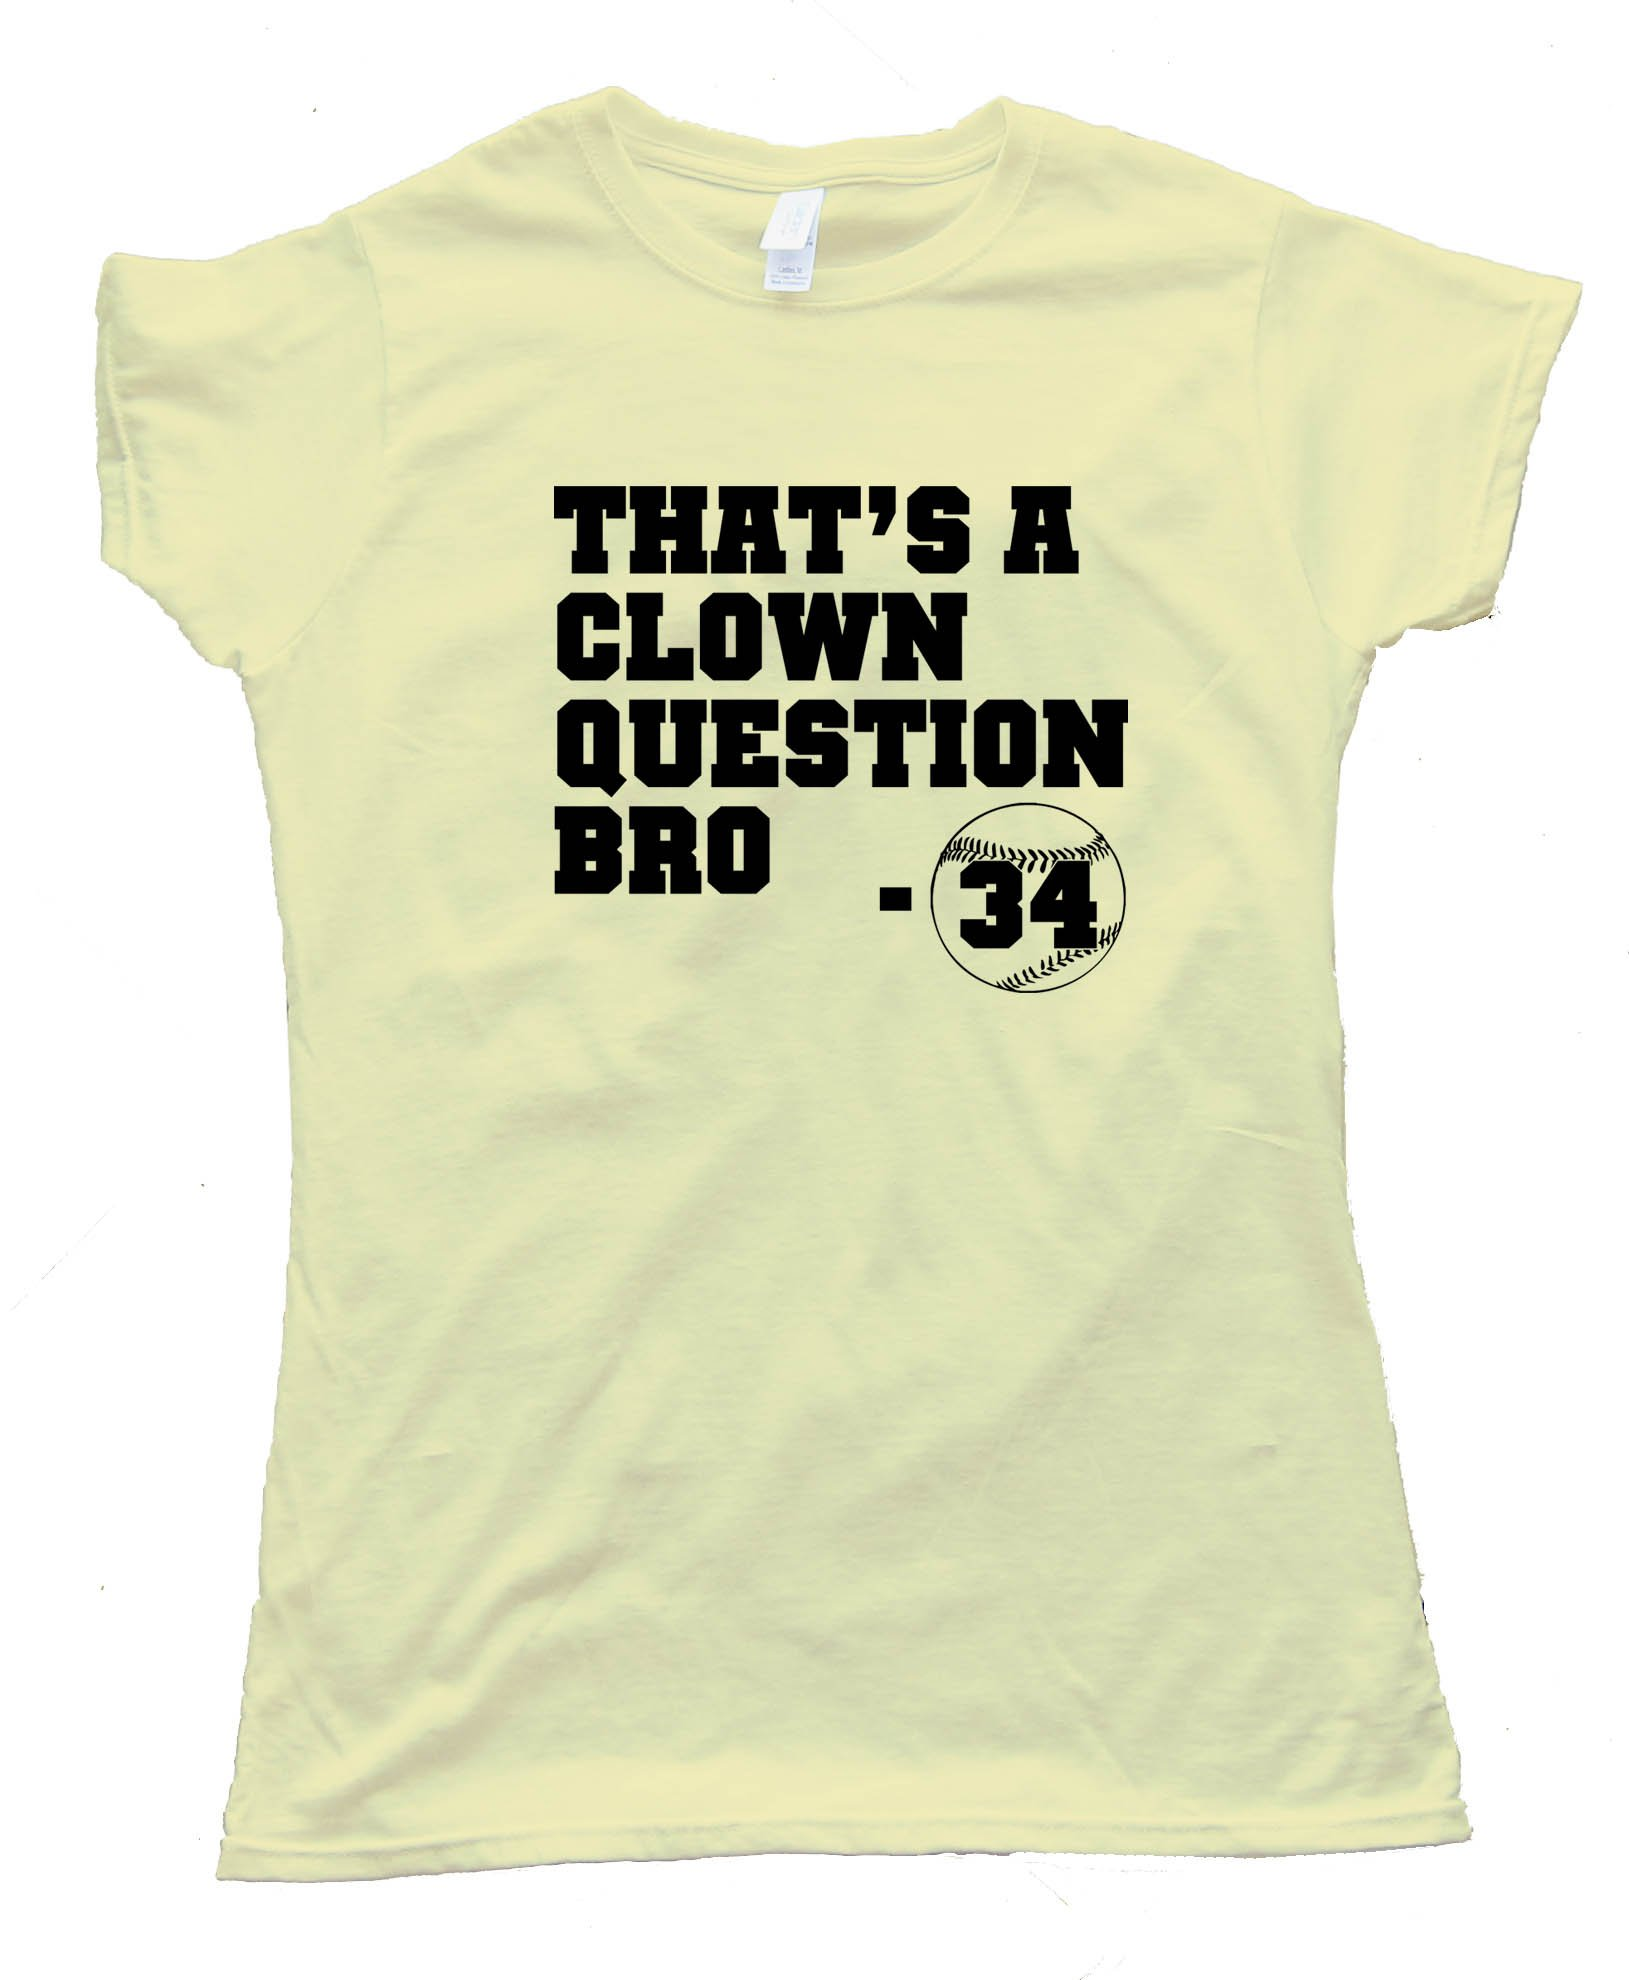 Womens Bryce Harper - That'S A Clown Question Bro - Baseball - Tee Shirt